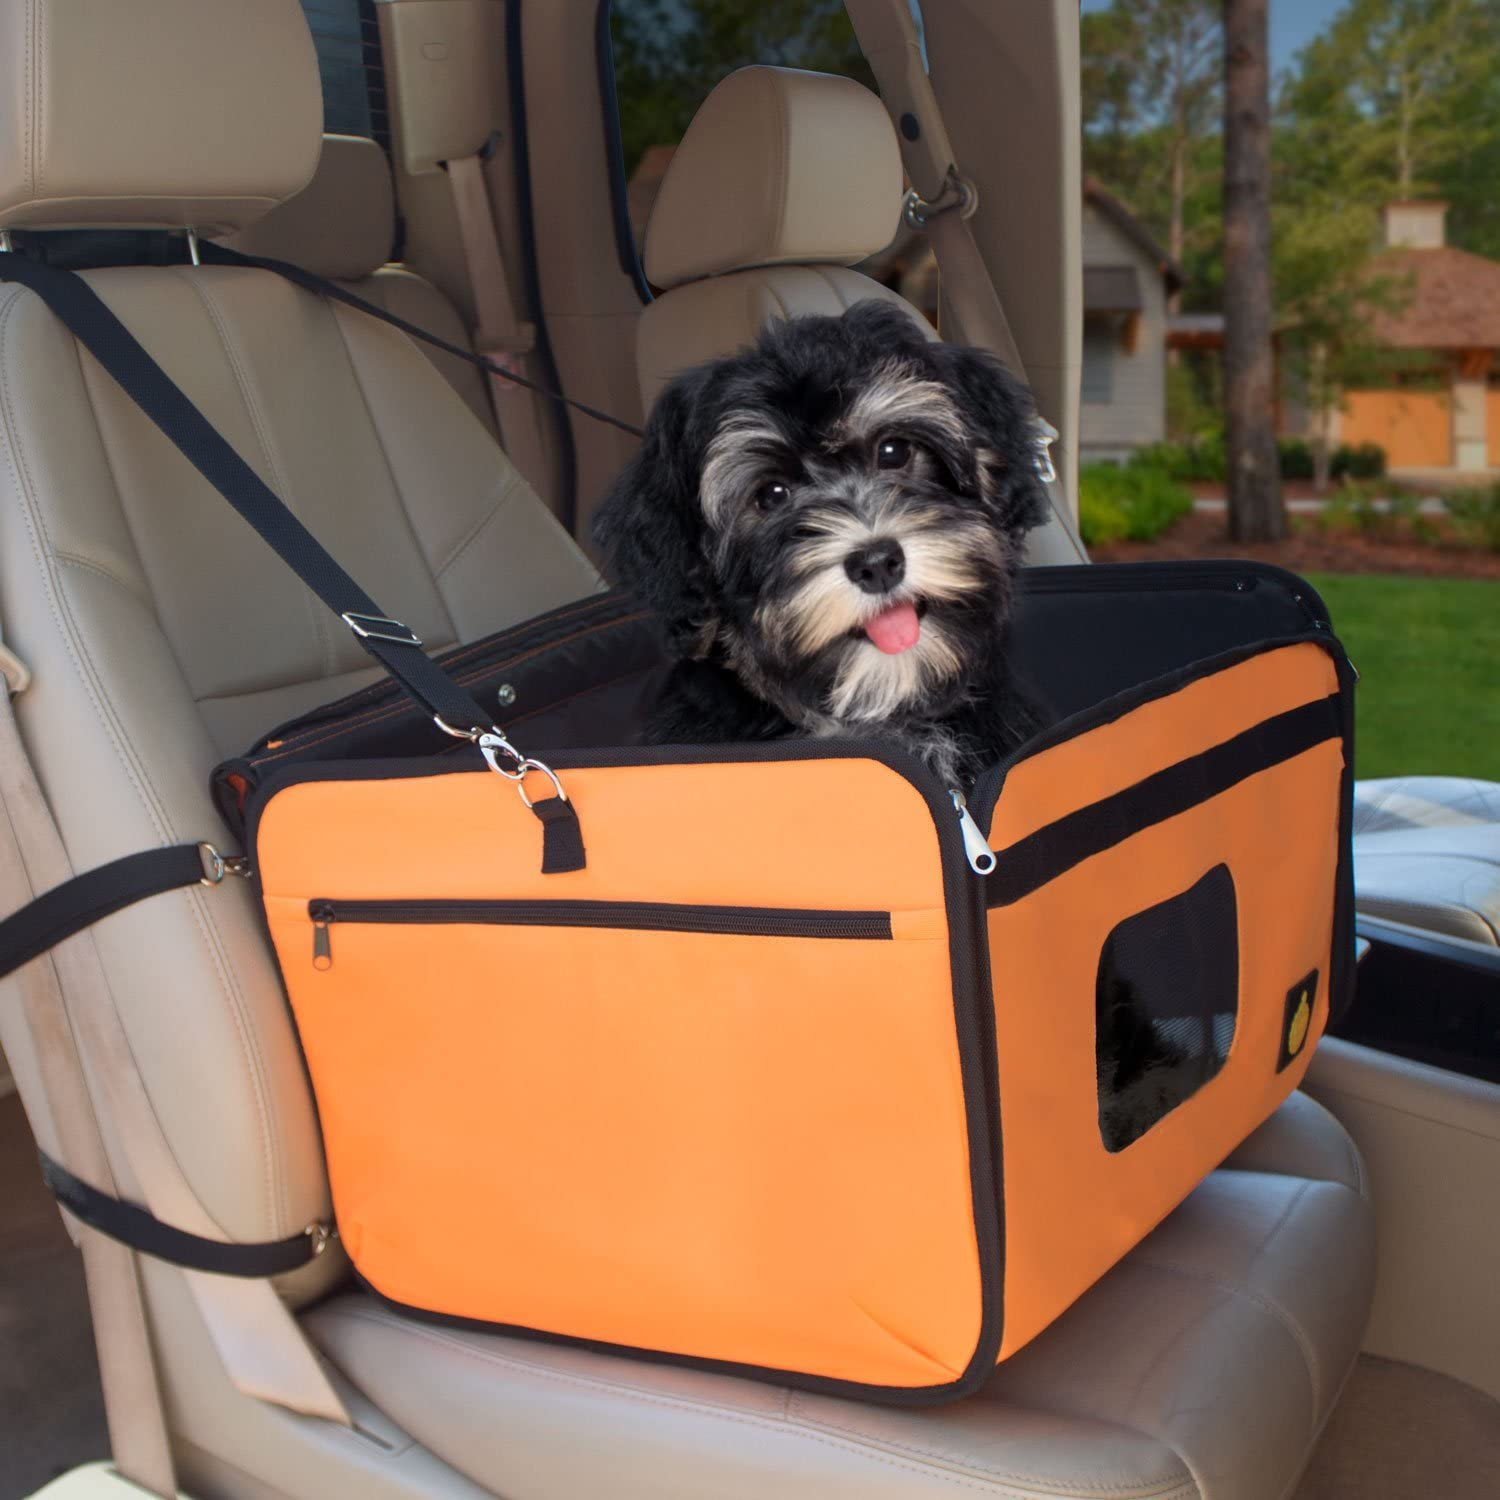 Folds and Fits in Compact Carry Bag Trucks and SUVs Pet Booster Seat 18 x 14 x 12 Inches with Shoulder Strap FrontPet Orange Dog Car Seat Fits All Cars